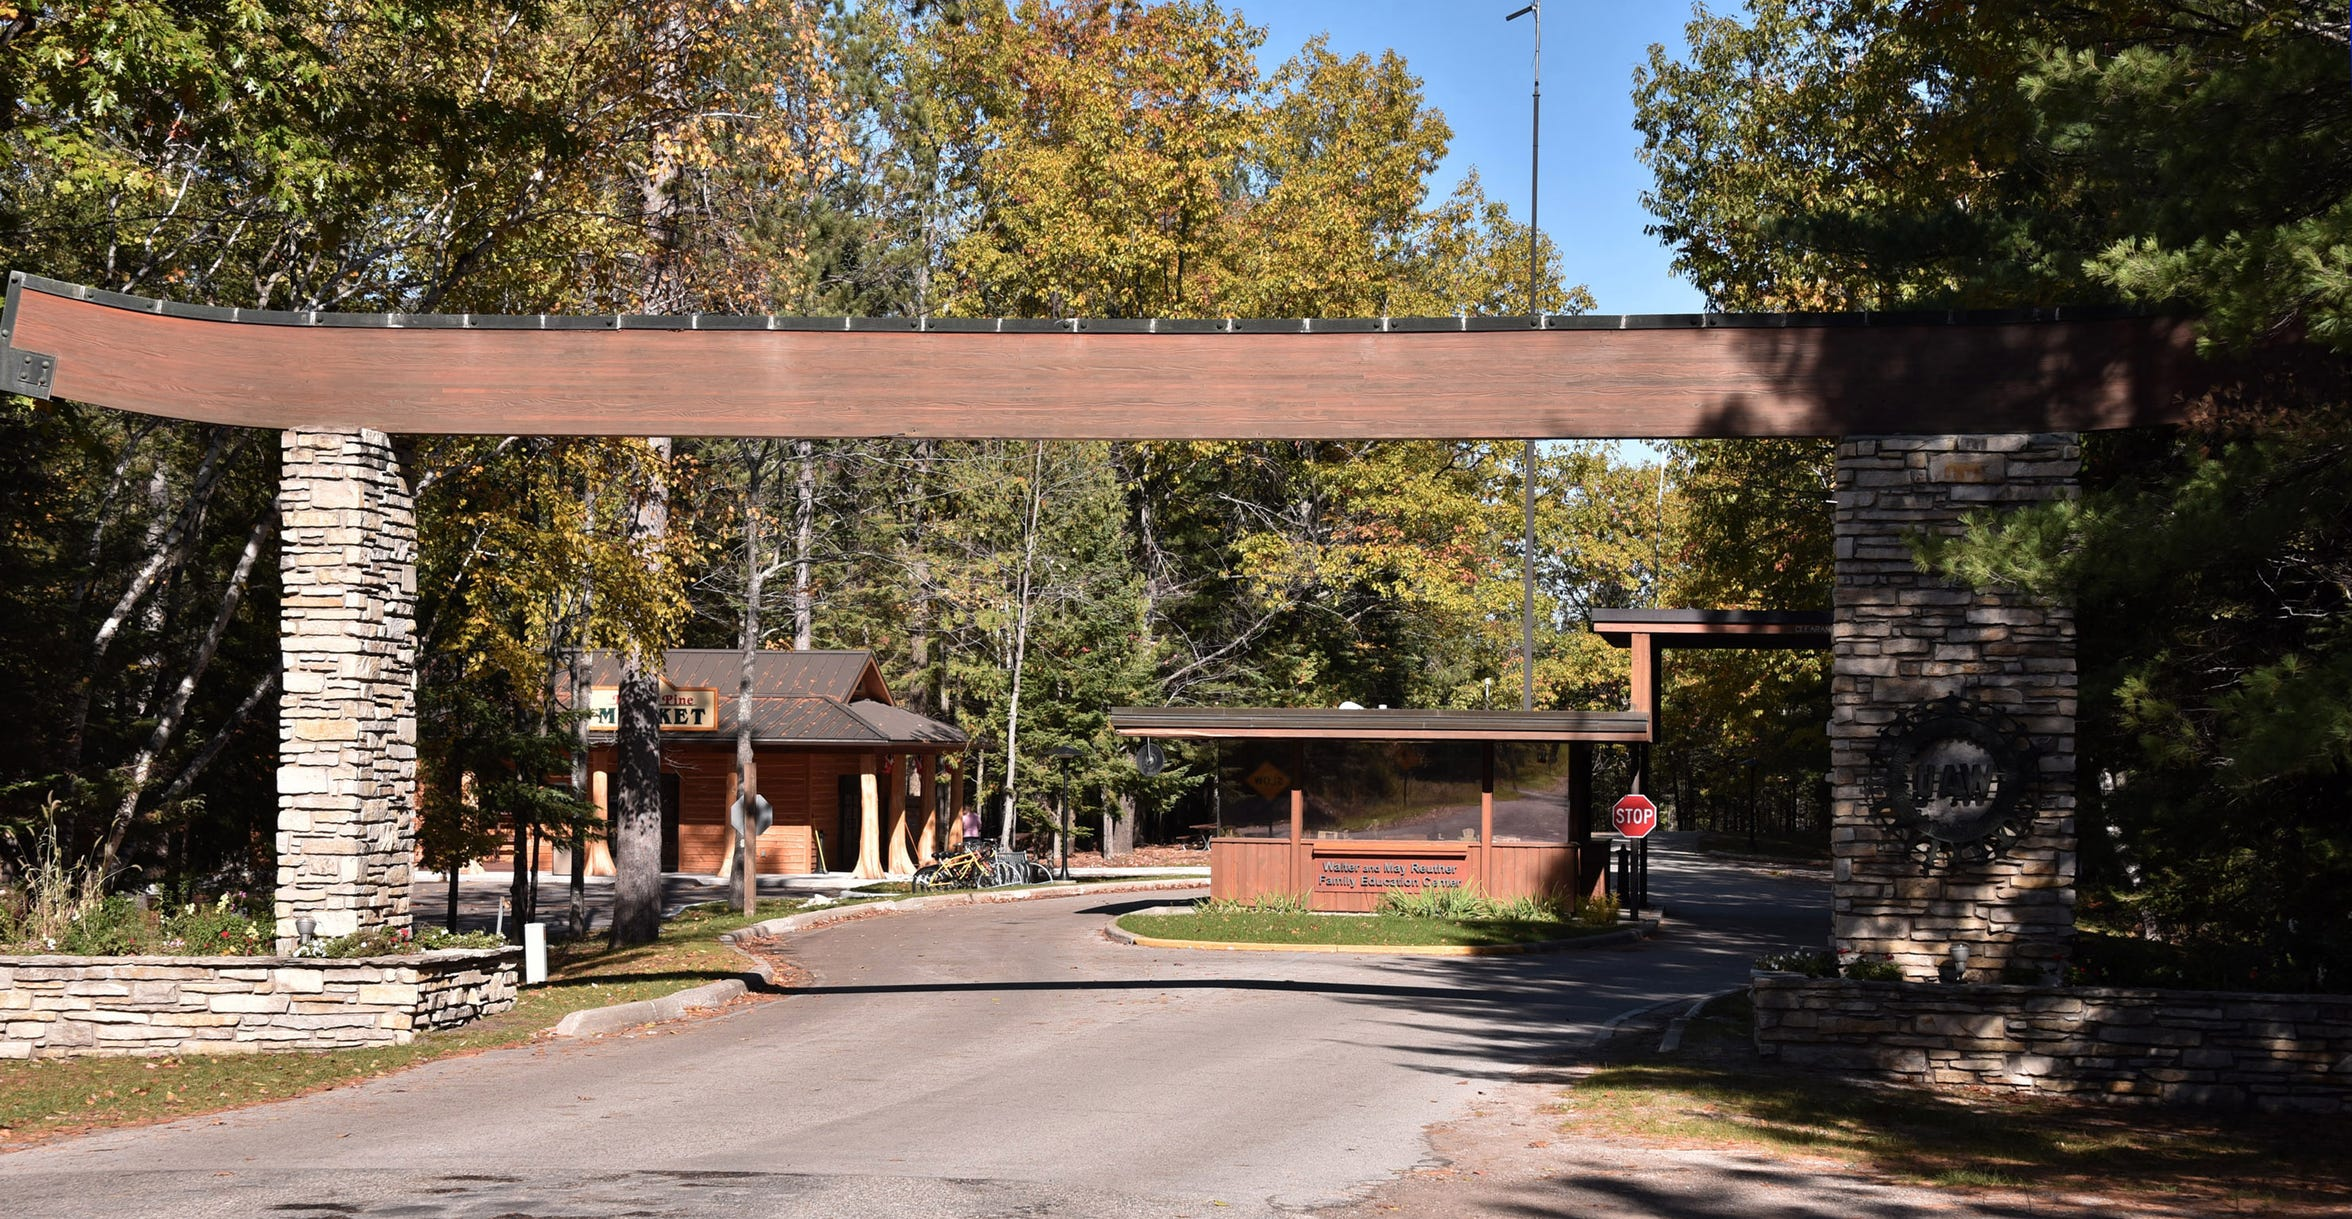 The entrance to the UAW property on Black Lake, south of Cheboygan, is seen on October 22, 2018.